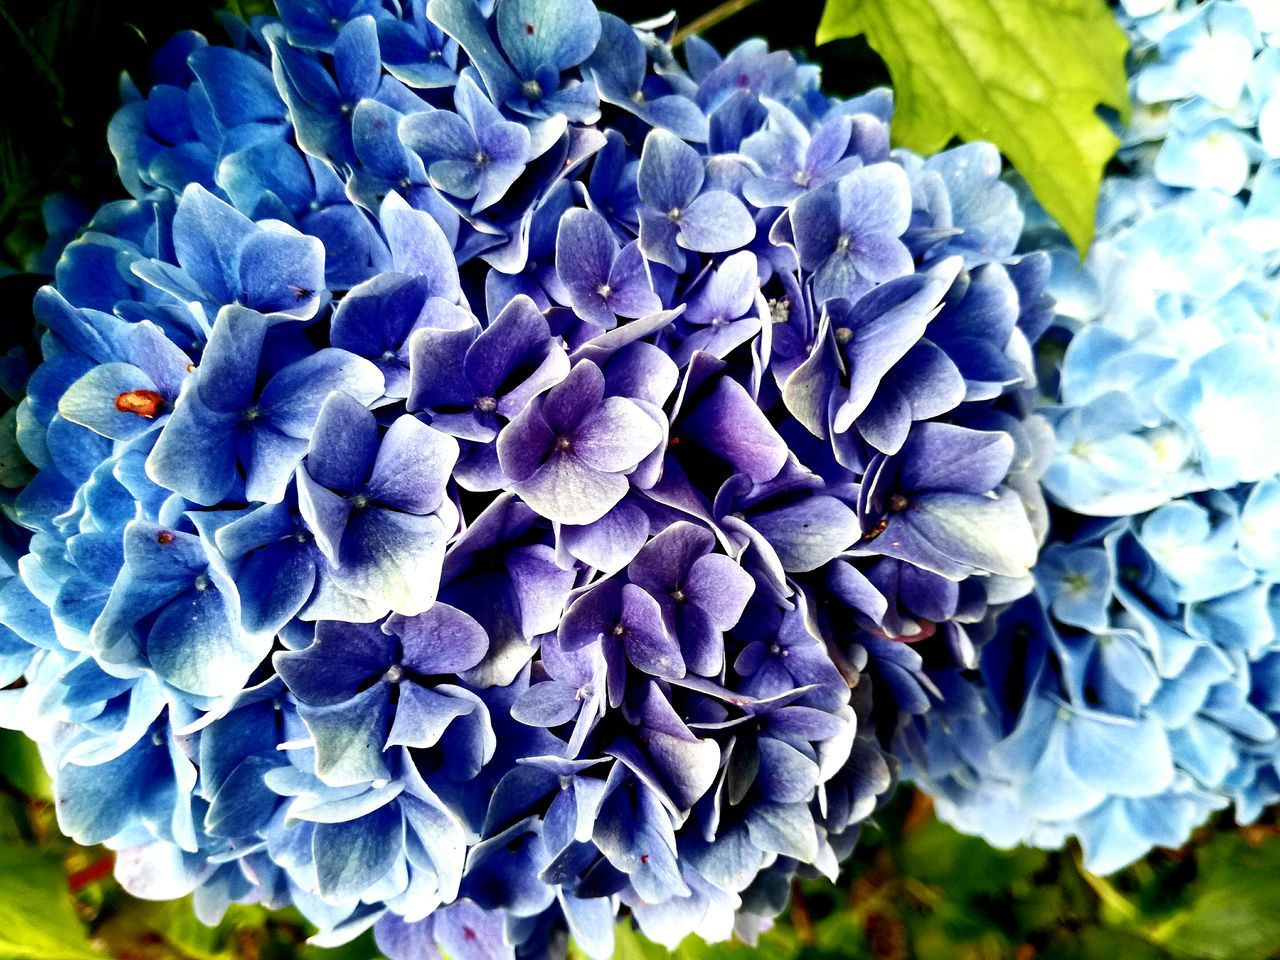 flower, beauty in nature, petal, purple, fragility, nature, flower head, freshness, growth, day, outdoors, plant, close-up, hydrangea, blooming, no people, springtime, petunia